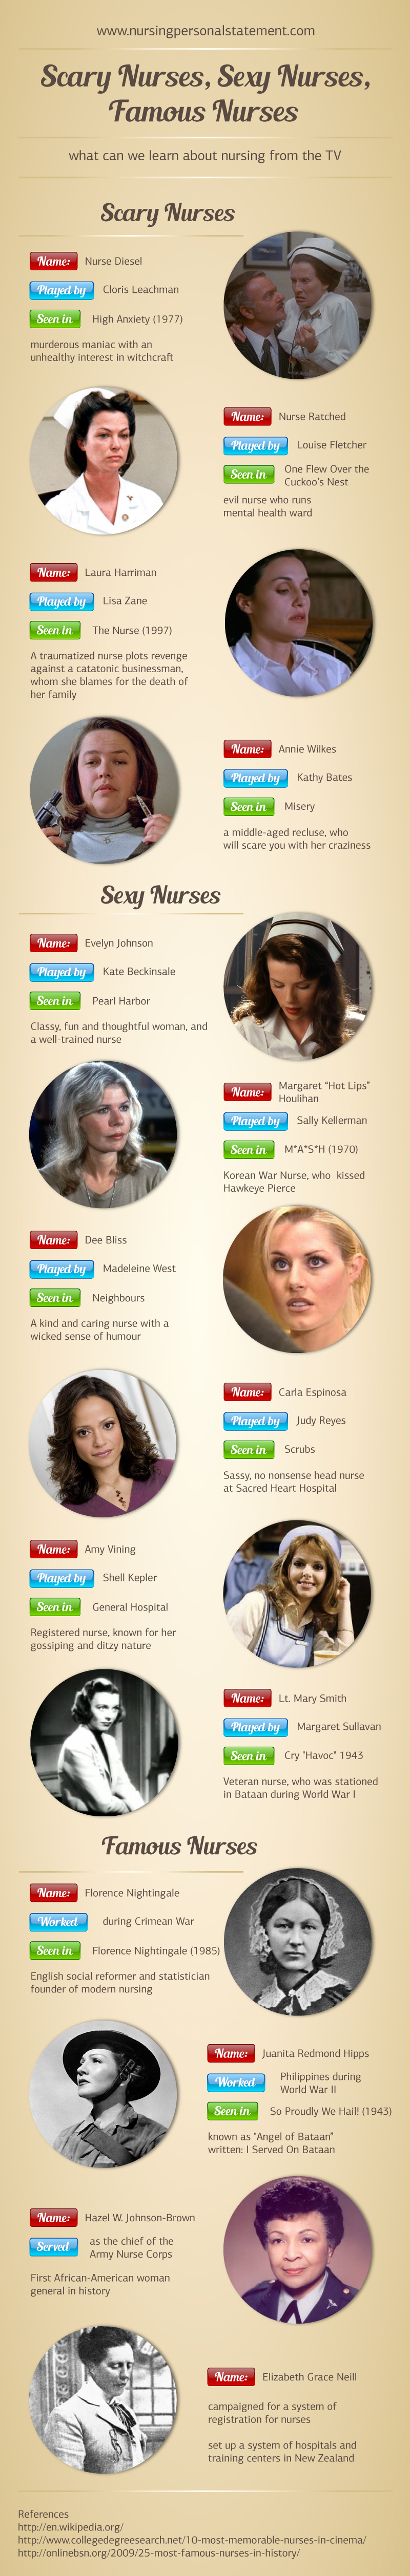 famous nurses infographic what we learn about nursing from the tv